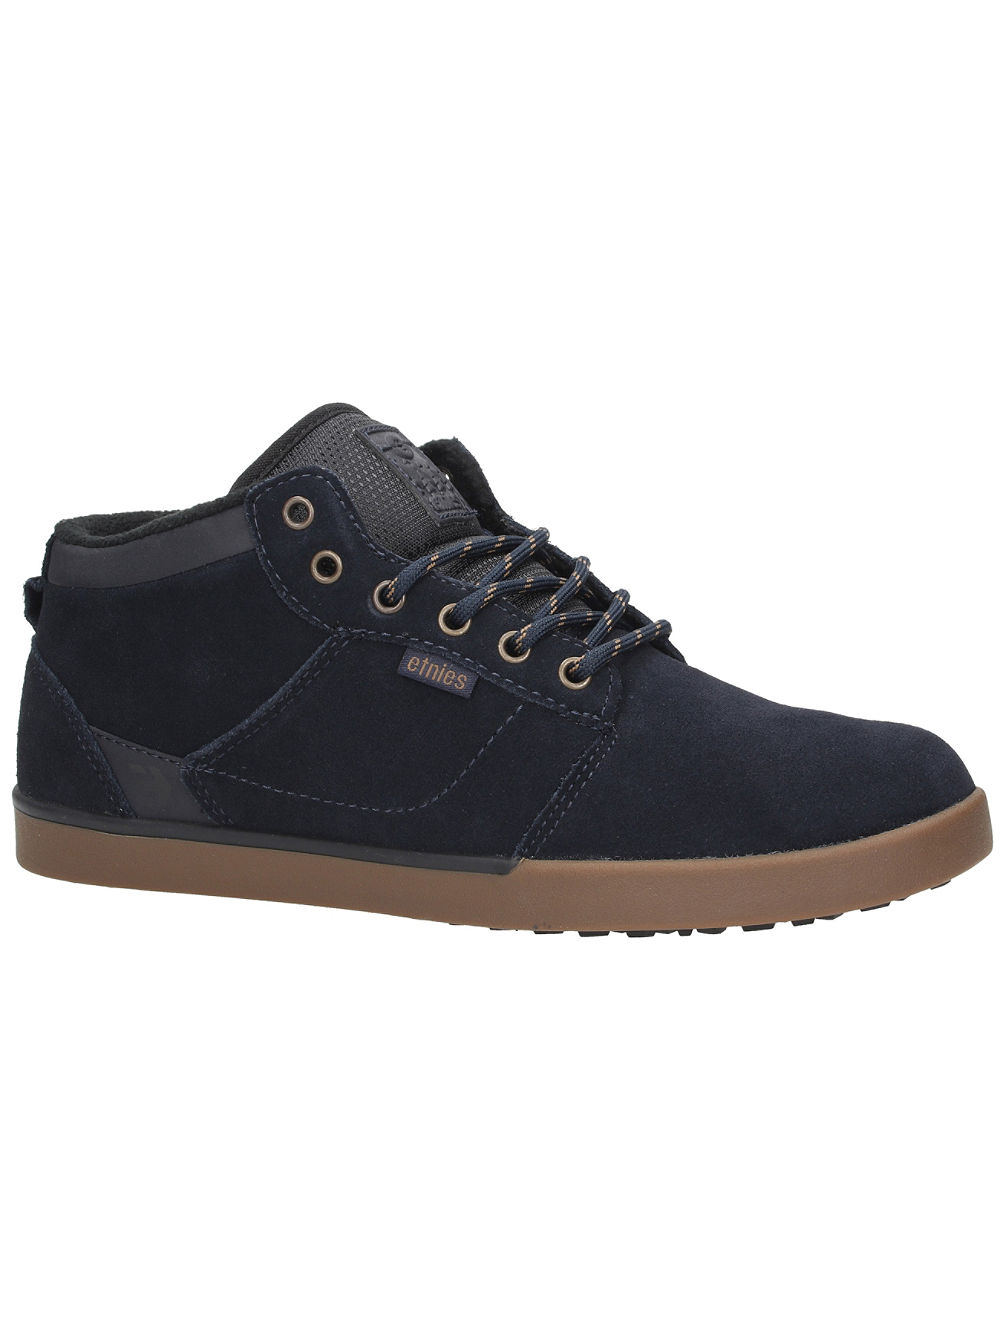 Jefferson MTW Chaussures D'Hiver